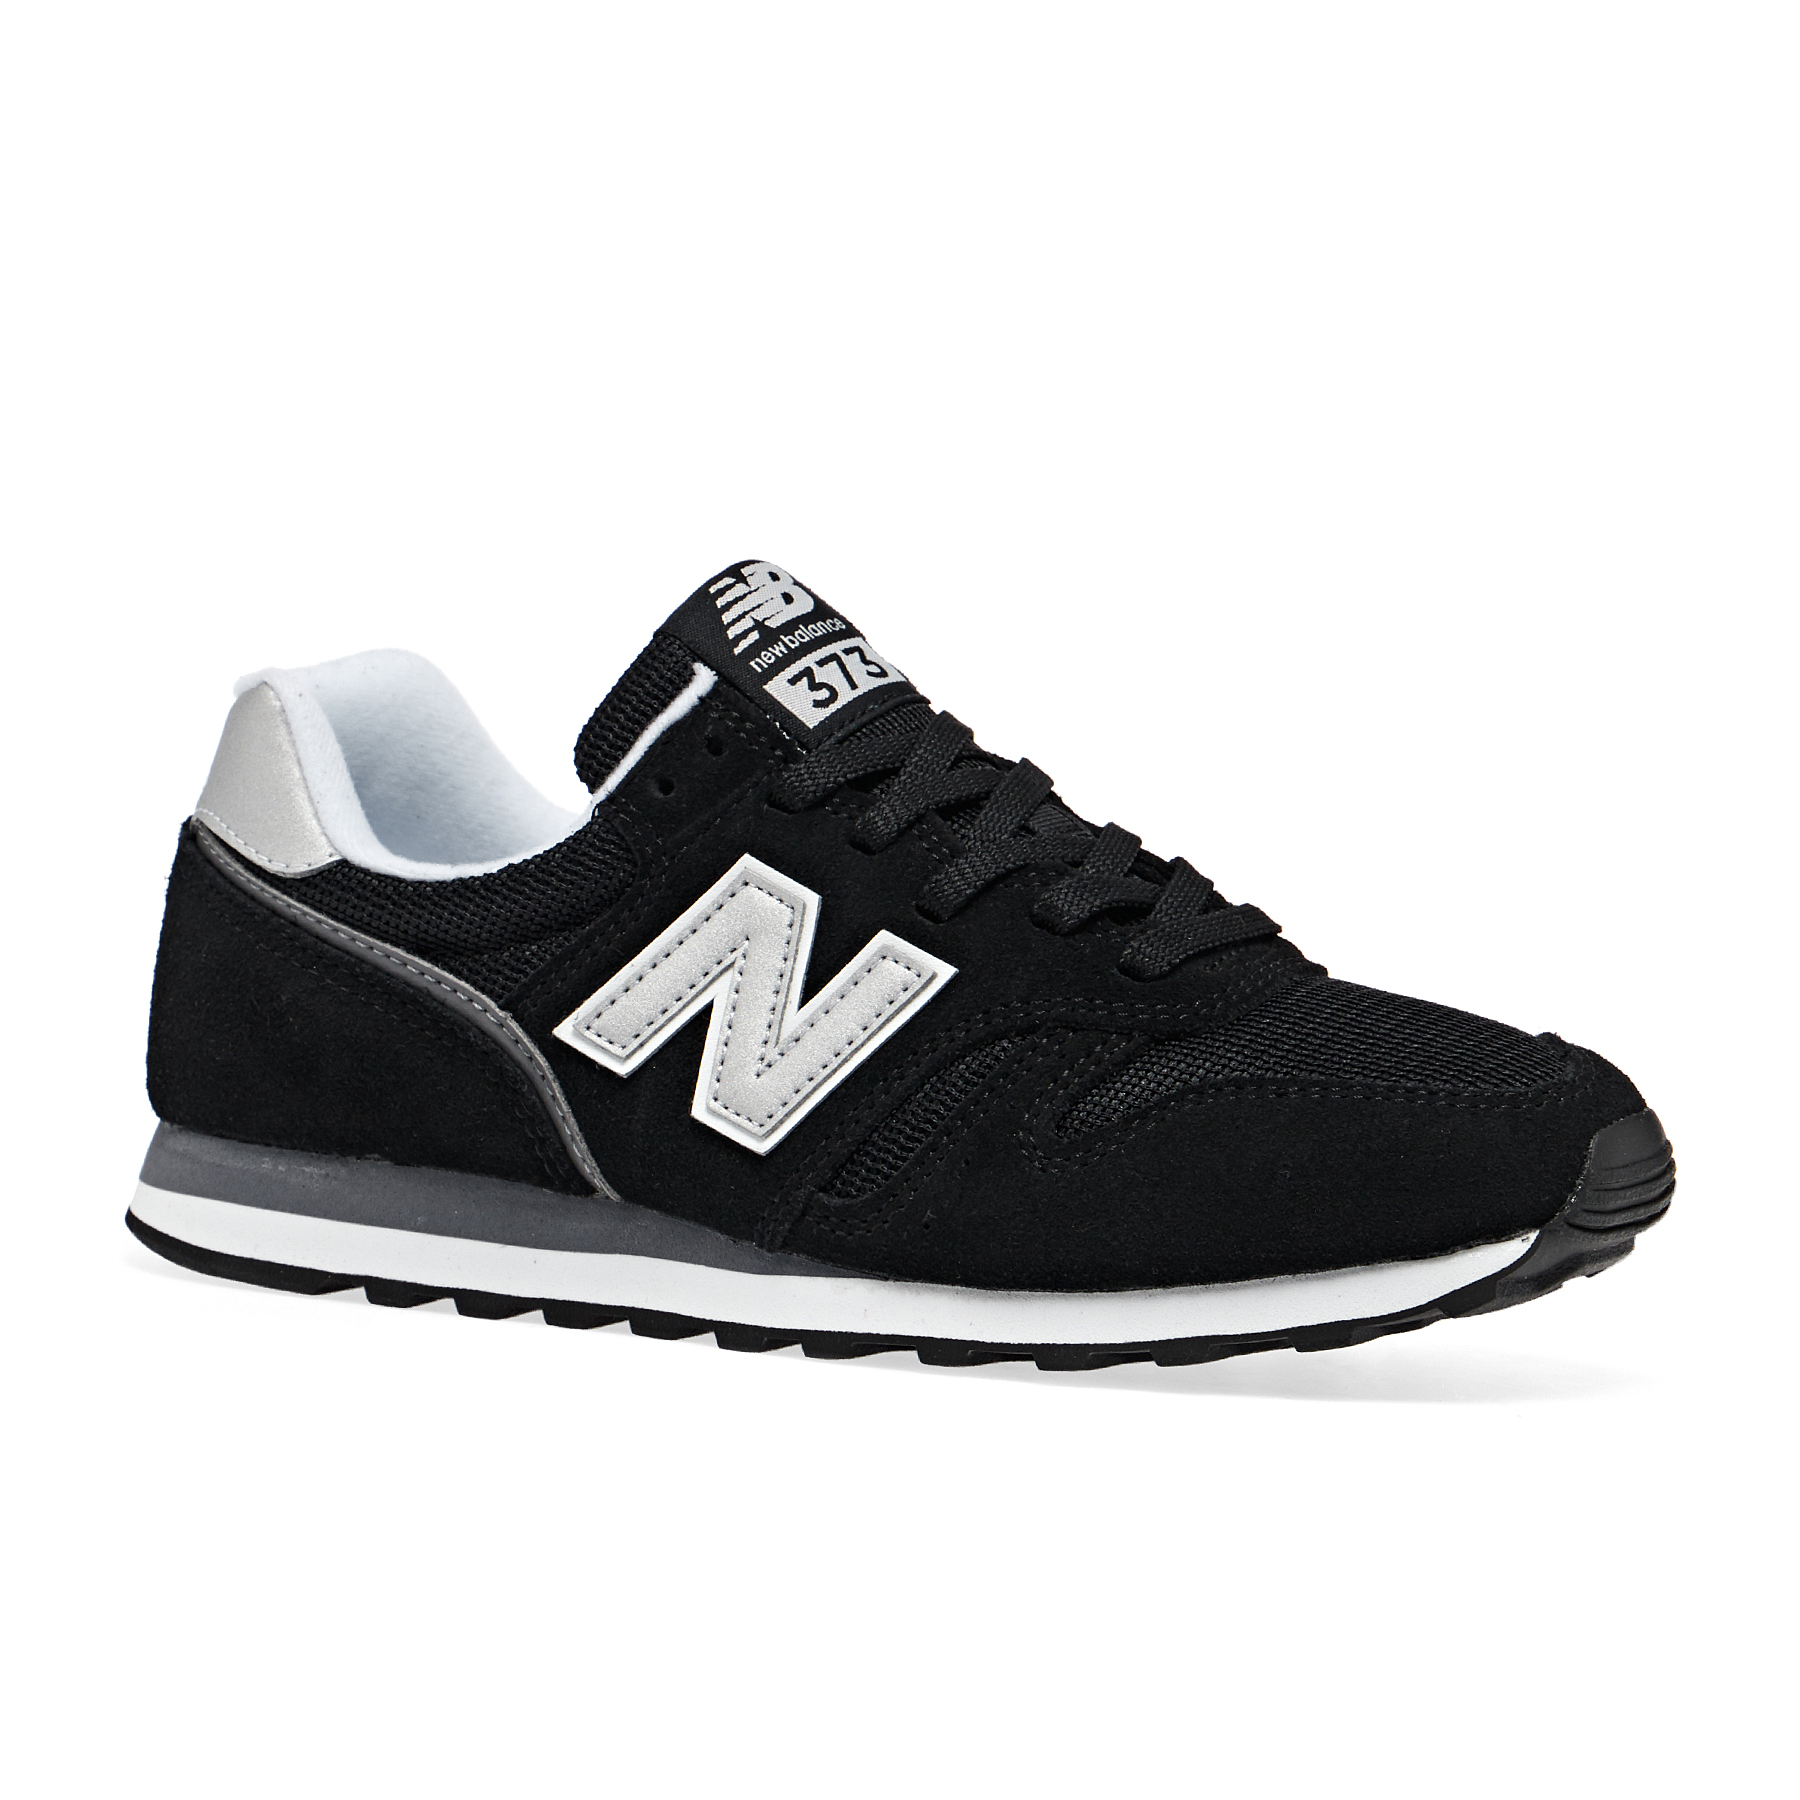 New Balance Ml373 Shoes | Free Delivery Options